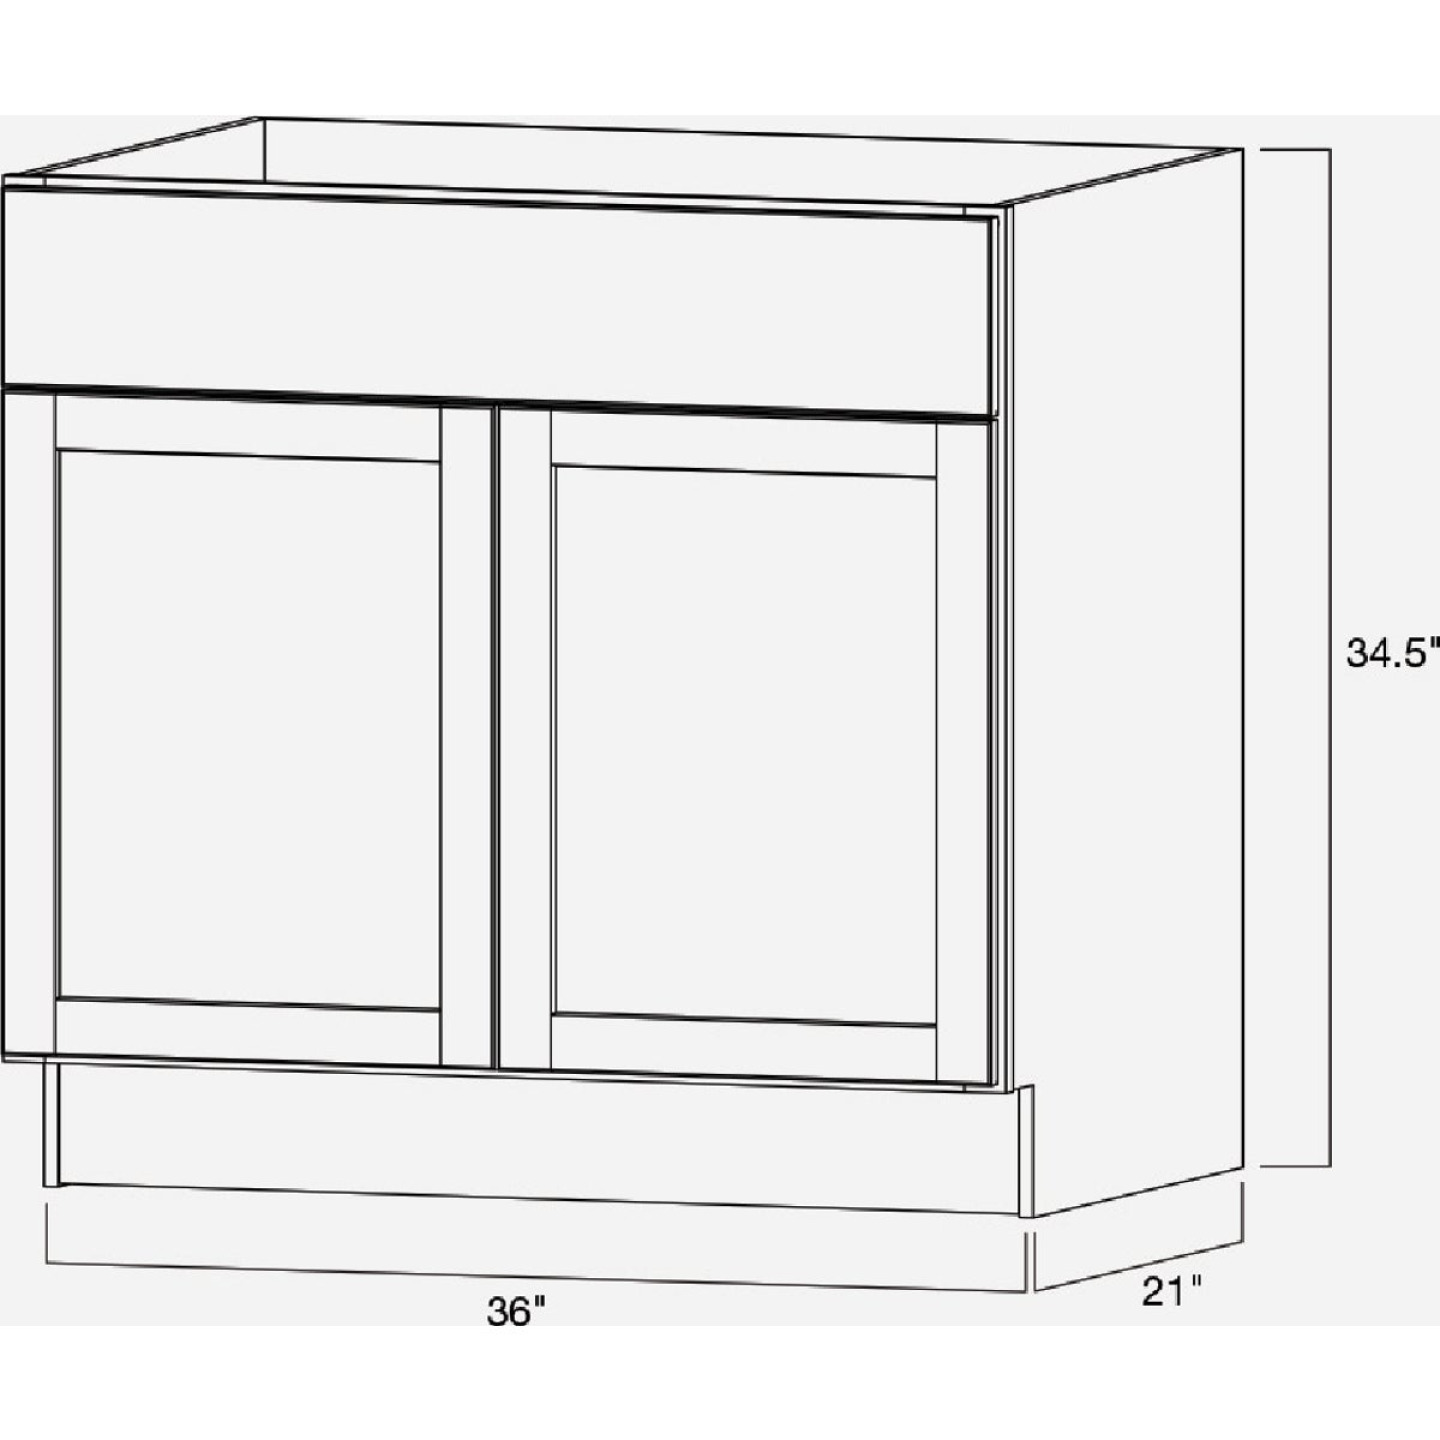 Continental Cabinets Andover Shaker 36 In. W x 34-1/2 In. H x 21 In. D White Vanity Base, 2 Door Image 5